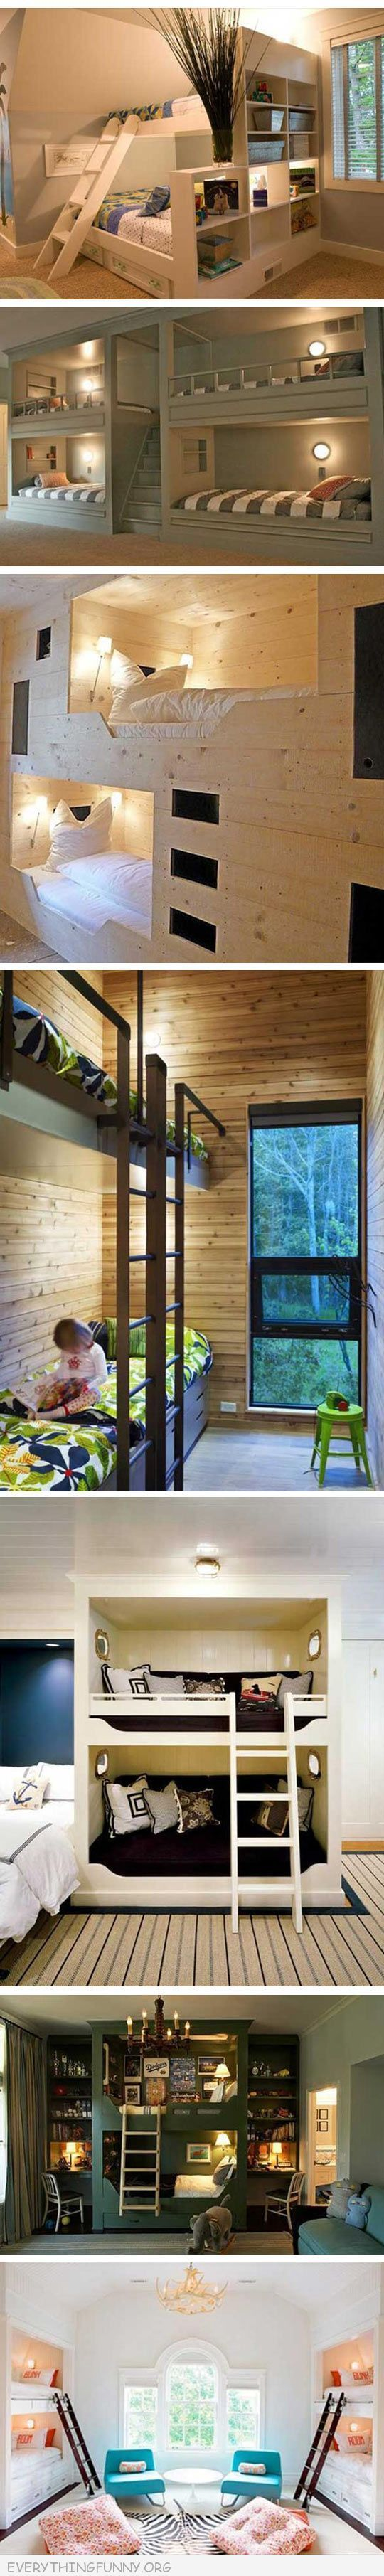 Built in loft bed ideas  funny awesome bunk beds ideas  DIY house stuff  Pinterest